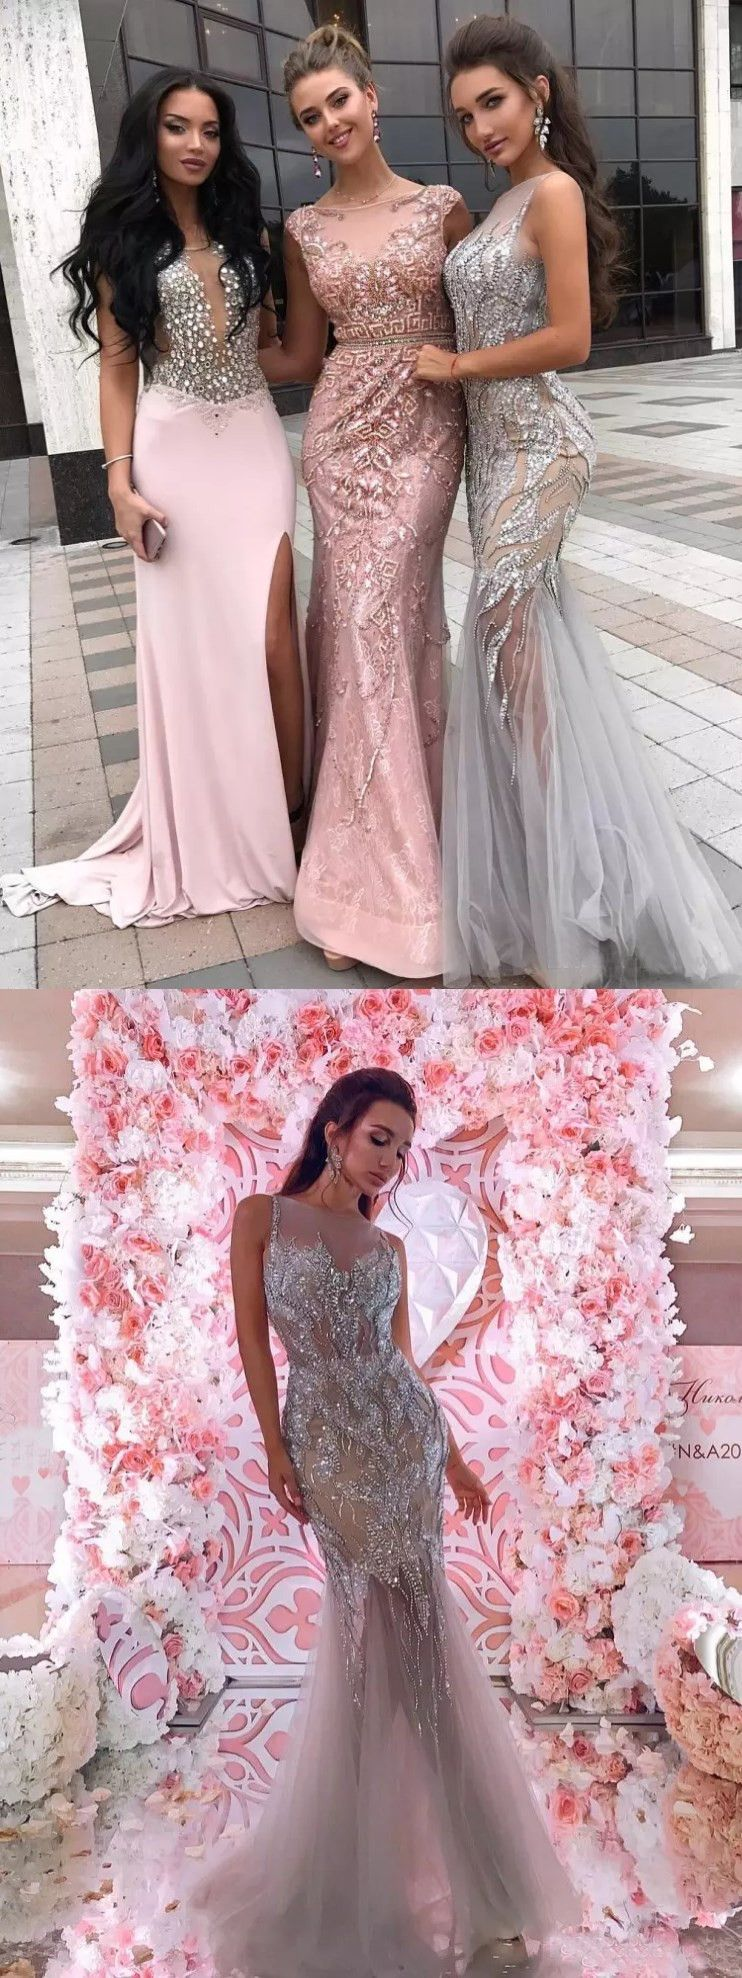 chic mermaid sparkly silver prom dresses beading long prom